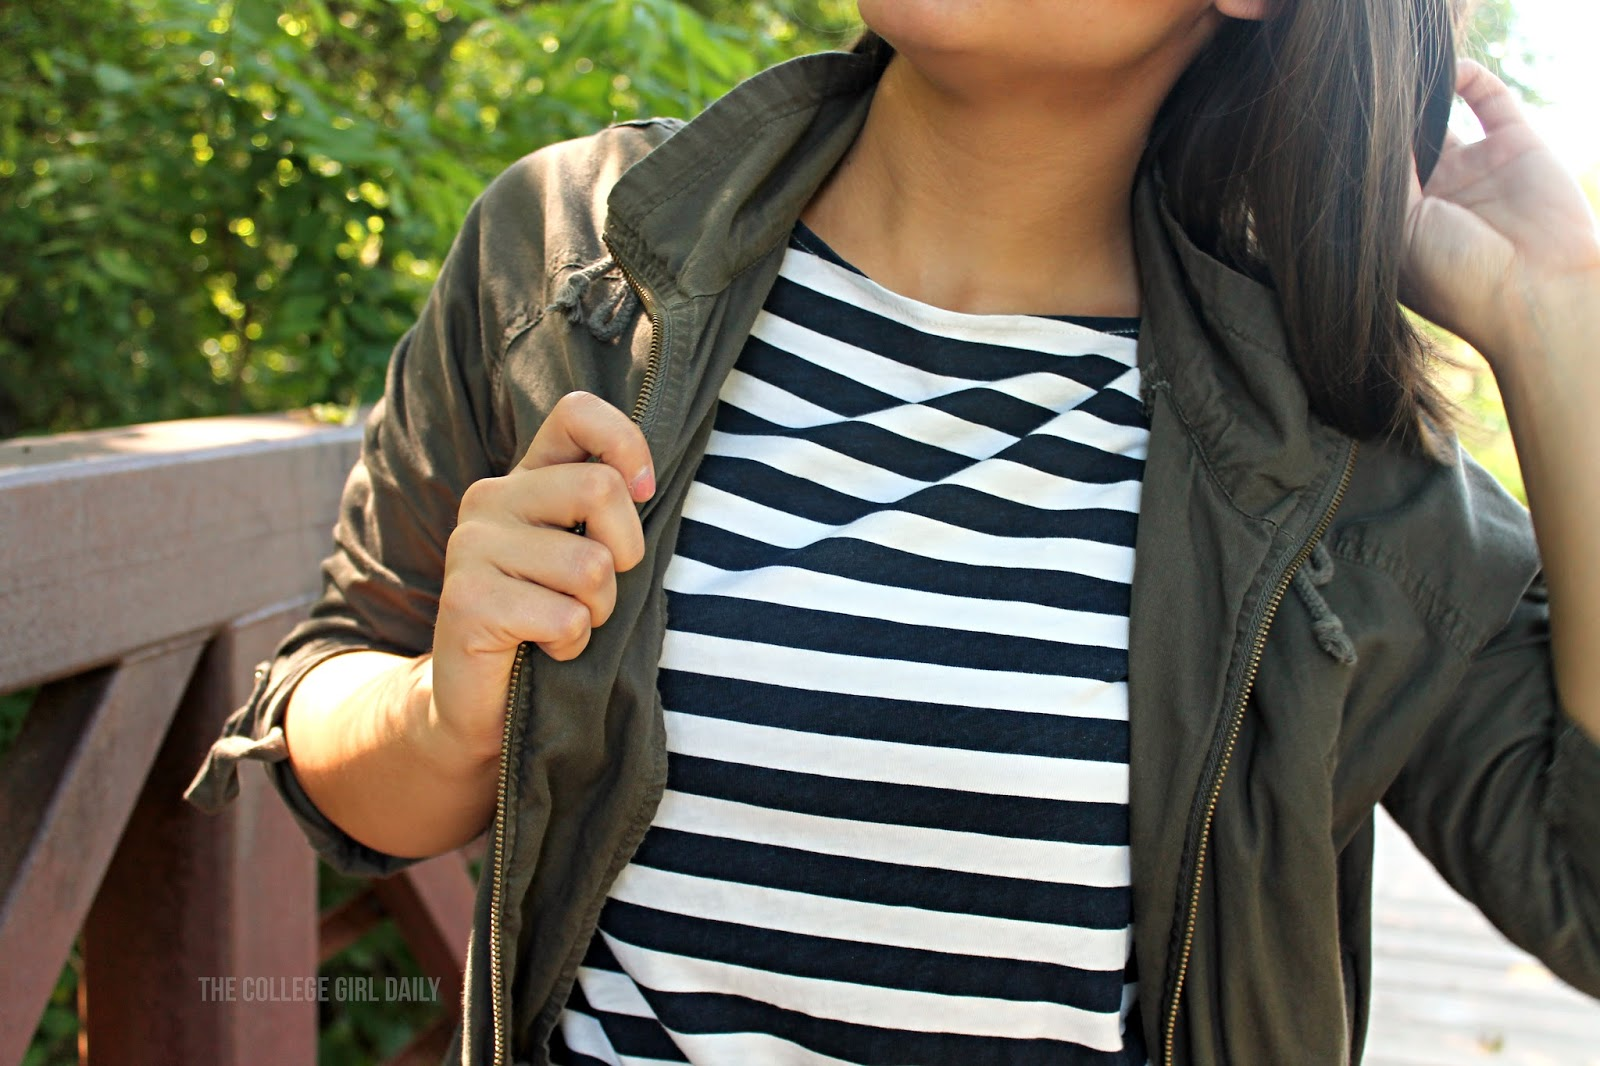 Casual, summer, stripes, glasses, jacket, foreve 21, boots, spring, red lipstick, nature, ootd,